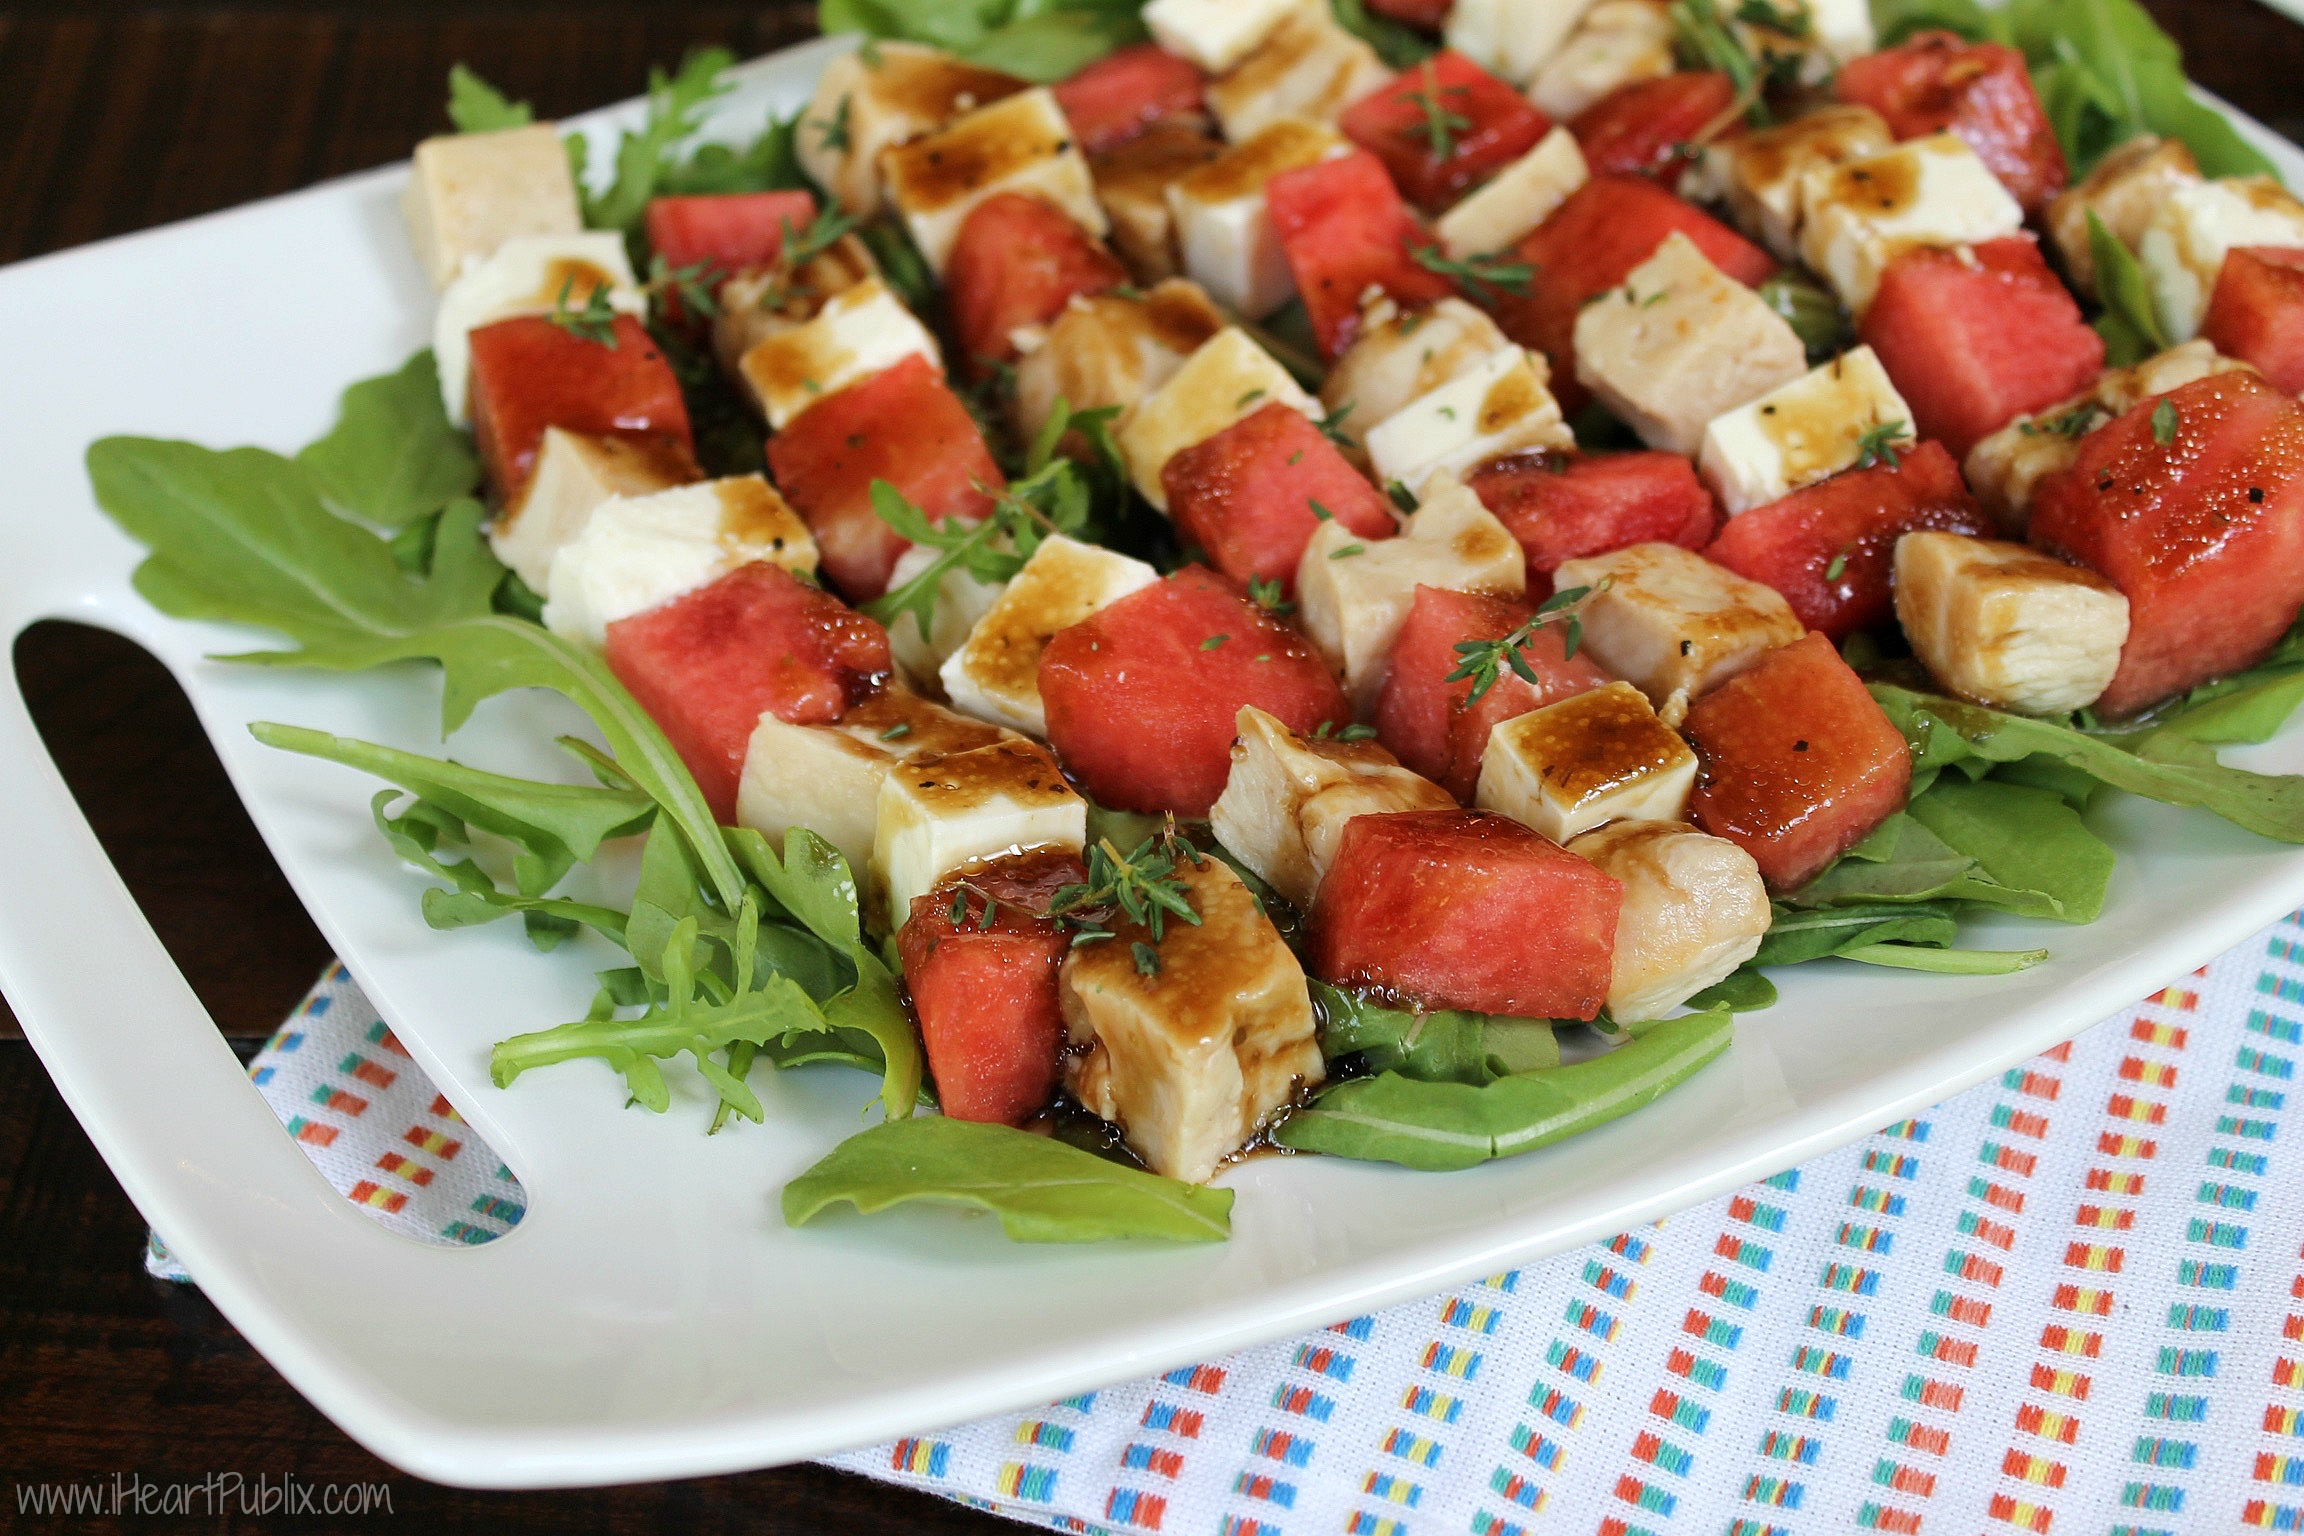 Watermelon & Chicken Salad